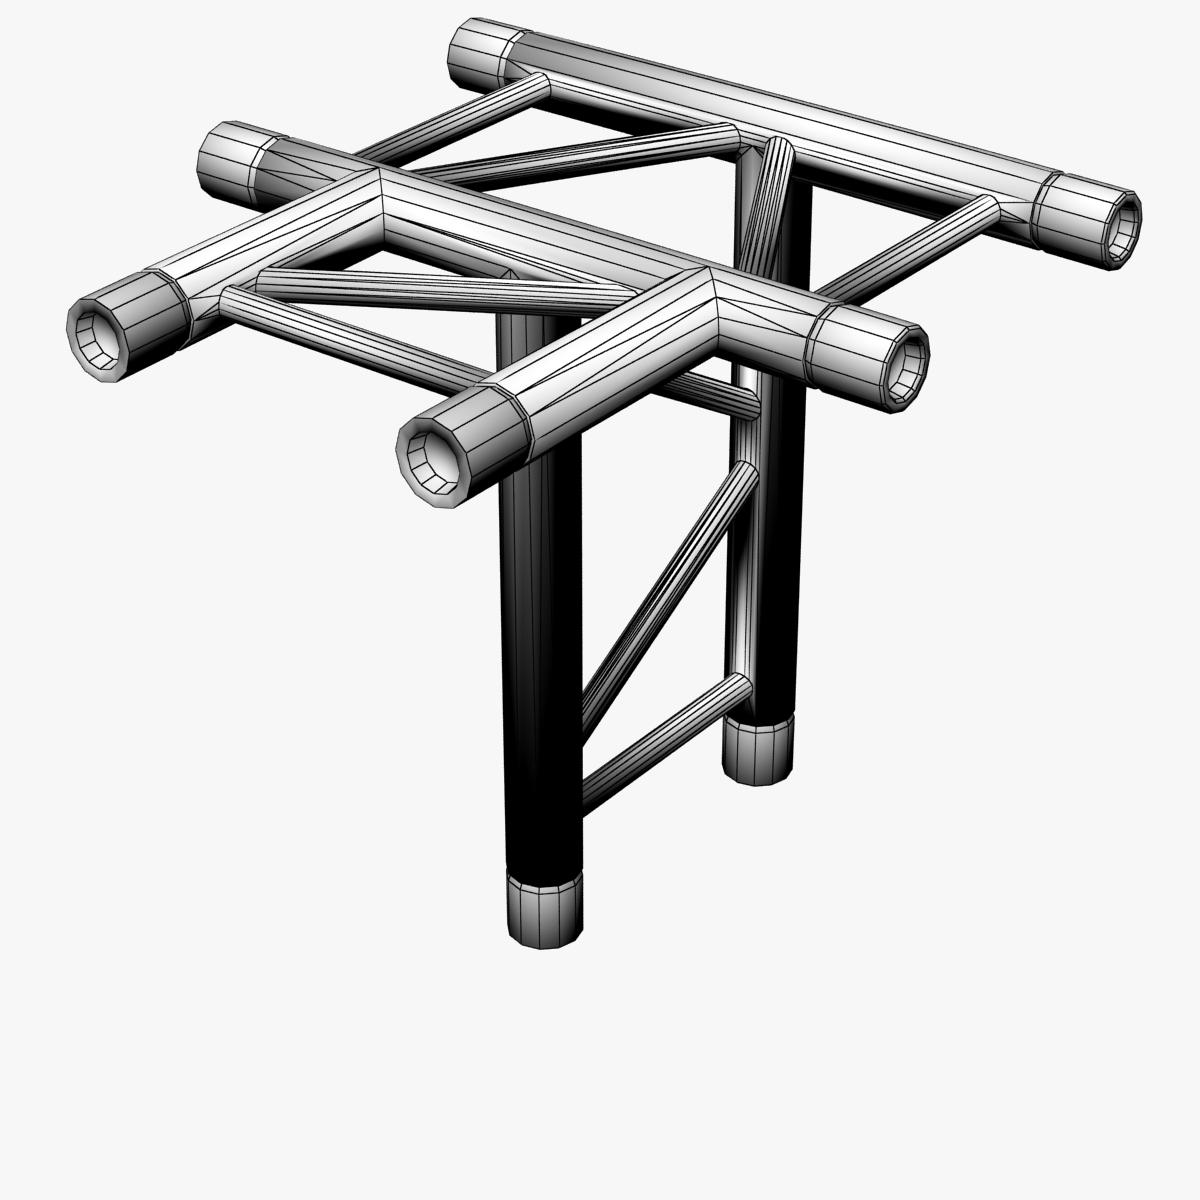 beam trusses (collection 24 modular pieces) 3d model 3ds max dxf fbx bmp blend c4d dae other obj 268742